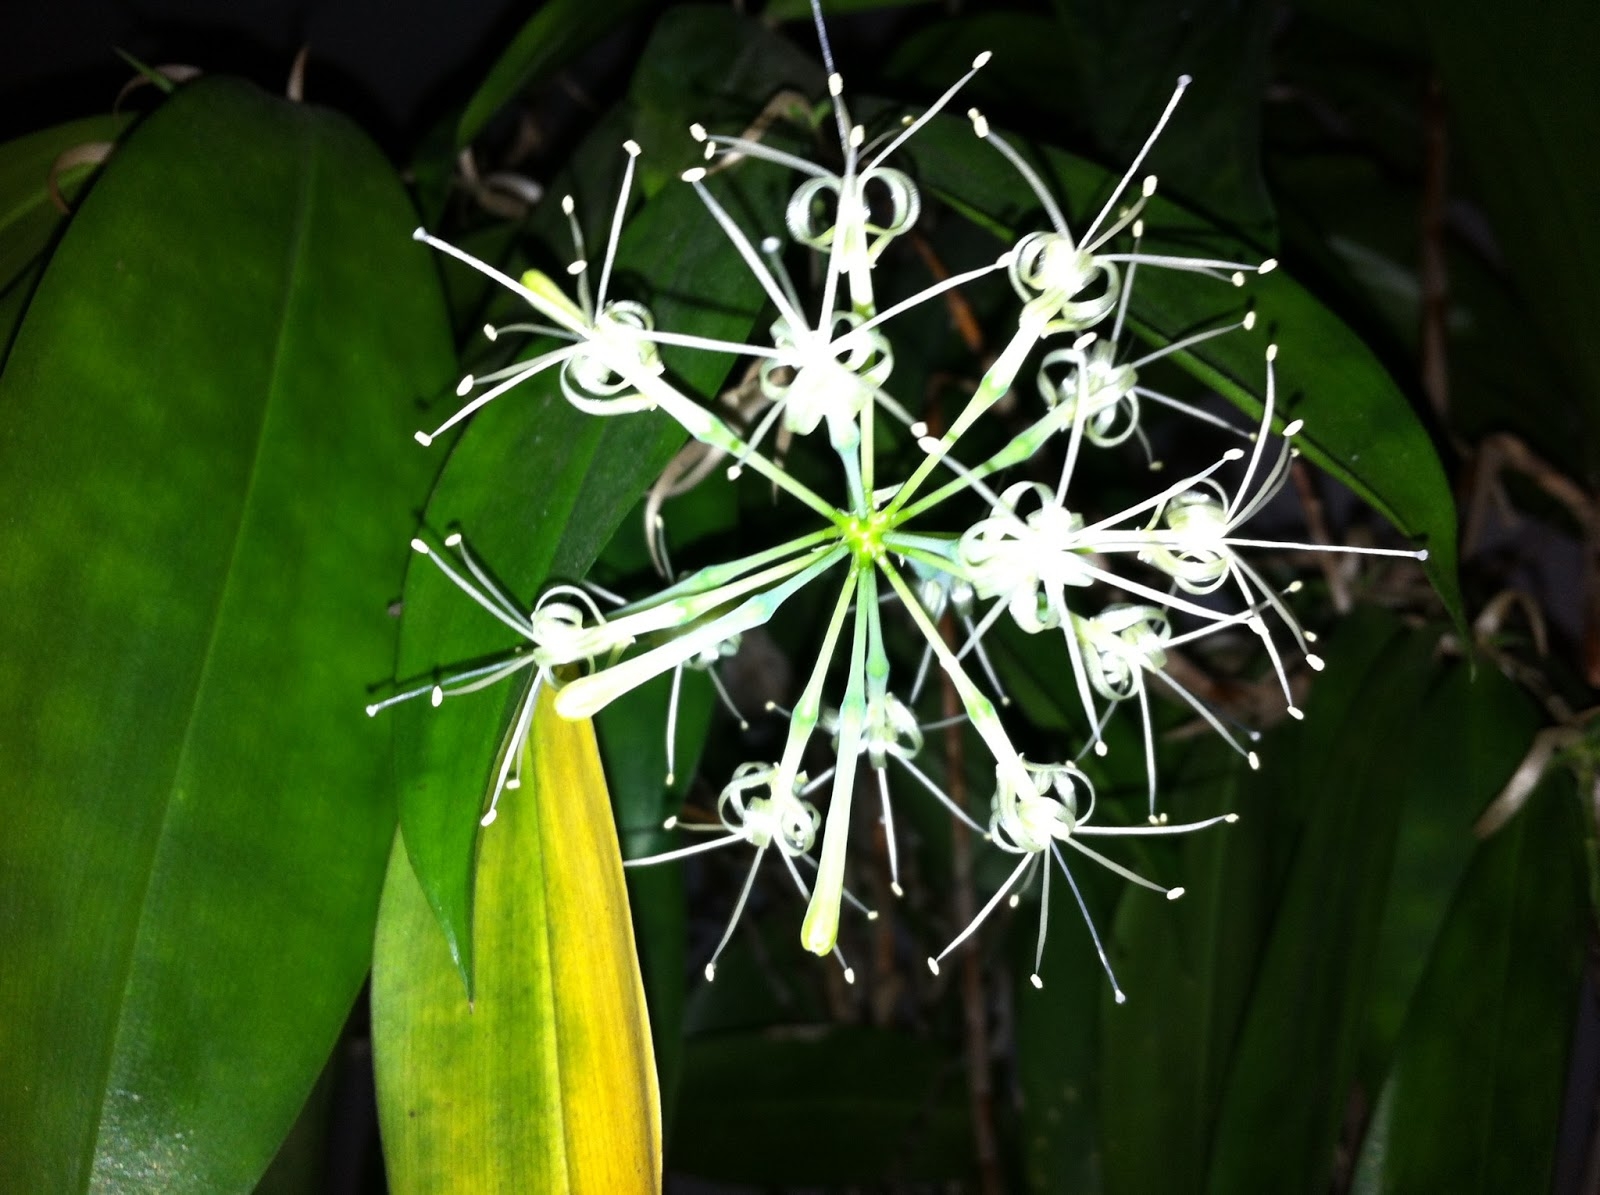 Uncle frank the cabbie rare and beautiful flowers wow see how beautiful the bamboo flowers look when in full bloom taken at 230am on 2nd april 2013 its such a thrill to see this very rare bamboo plant izmirmasajfo